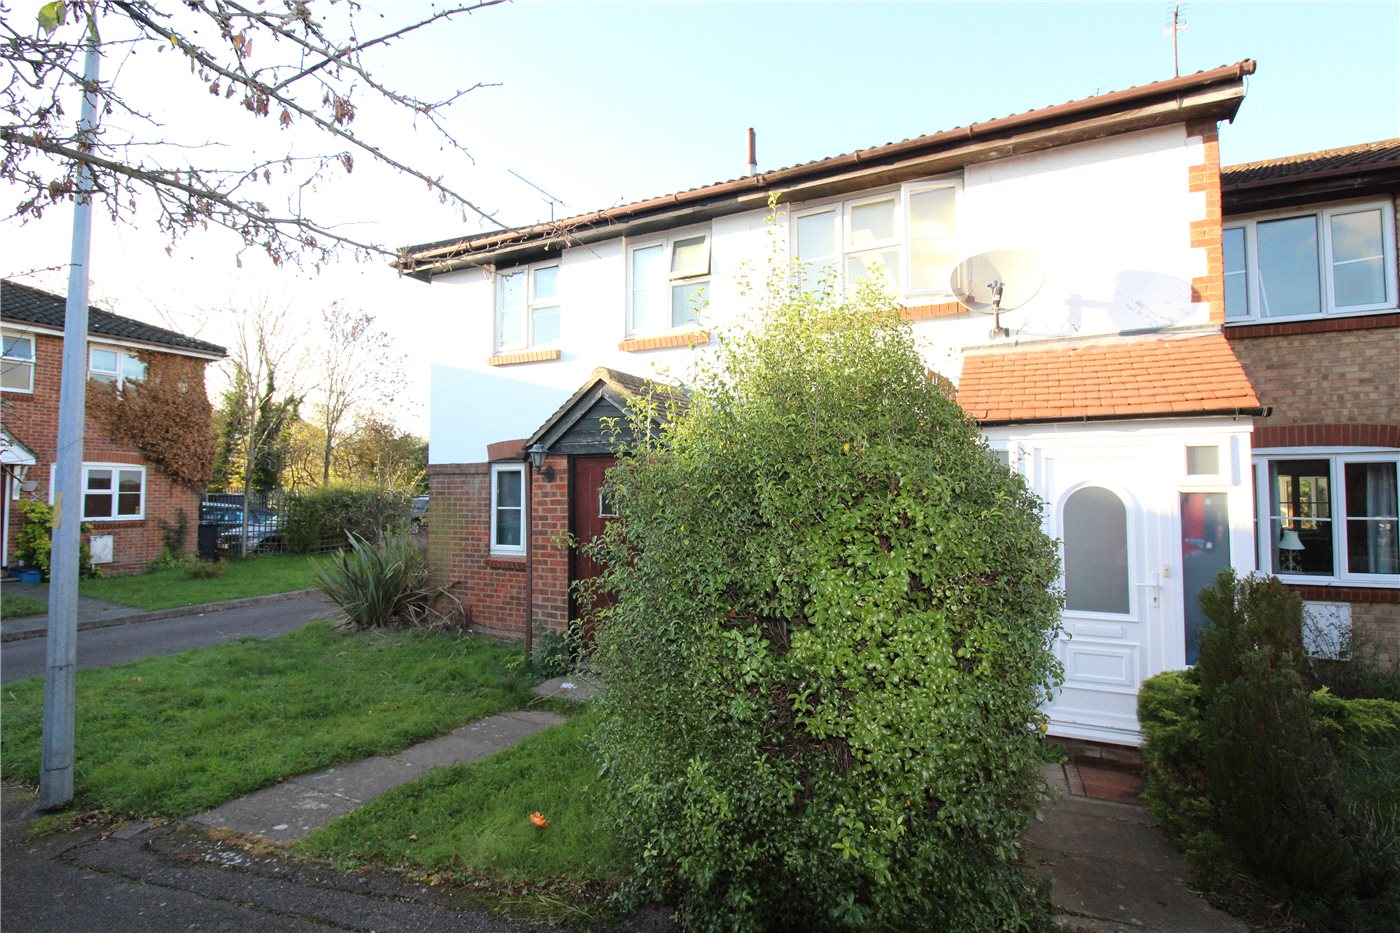 2 Bedrooms Terraced House for sale in Siskin Close, Borehamwood, Hertfordshire, WD6